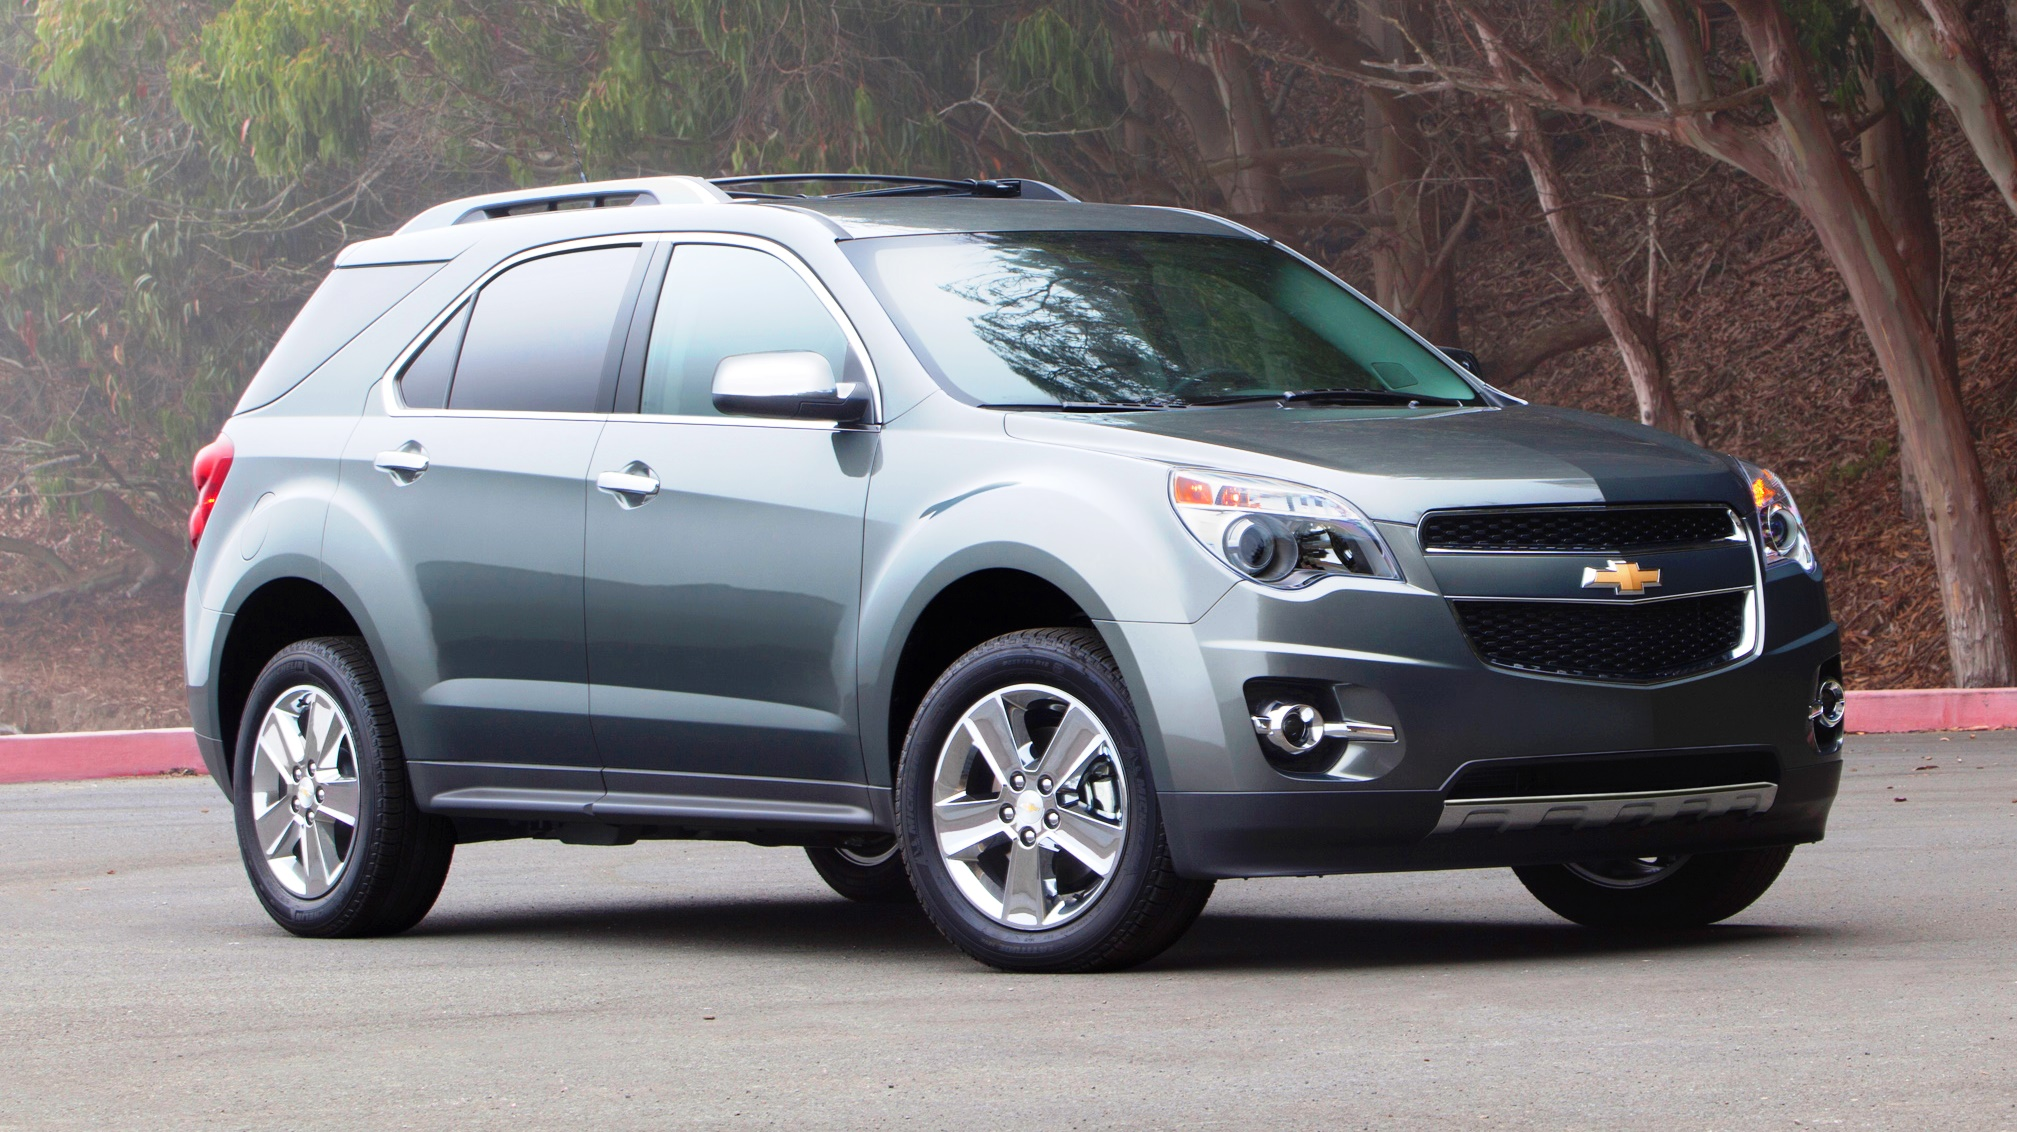 2013 Chevy Cruze Tire Size >> 2012 Chevy Equinox Tire Size - 2018 - 2019 New Car Reviews by Language Kompis